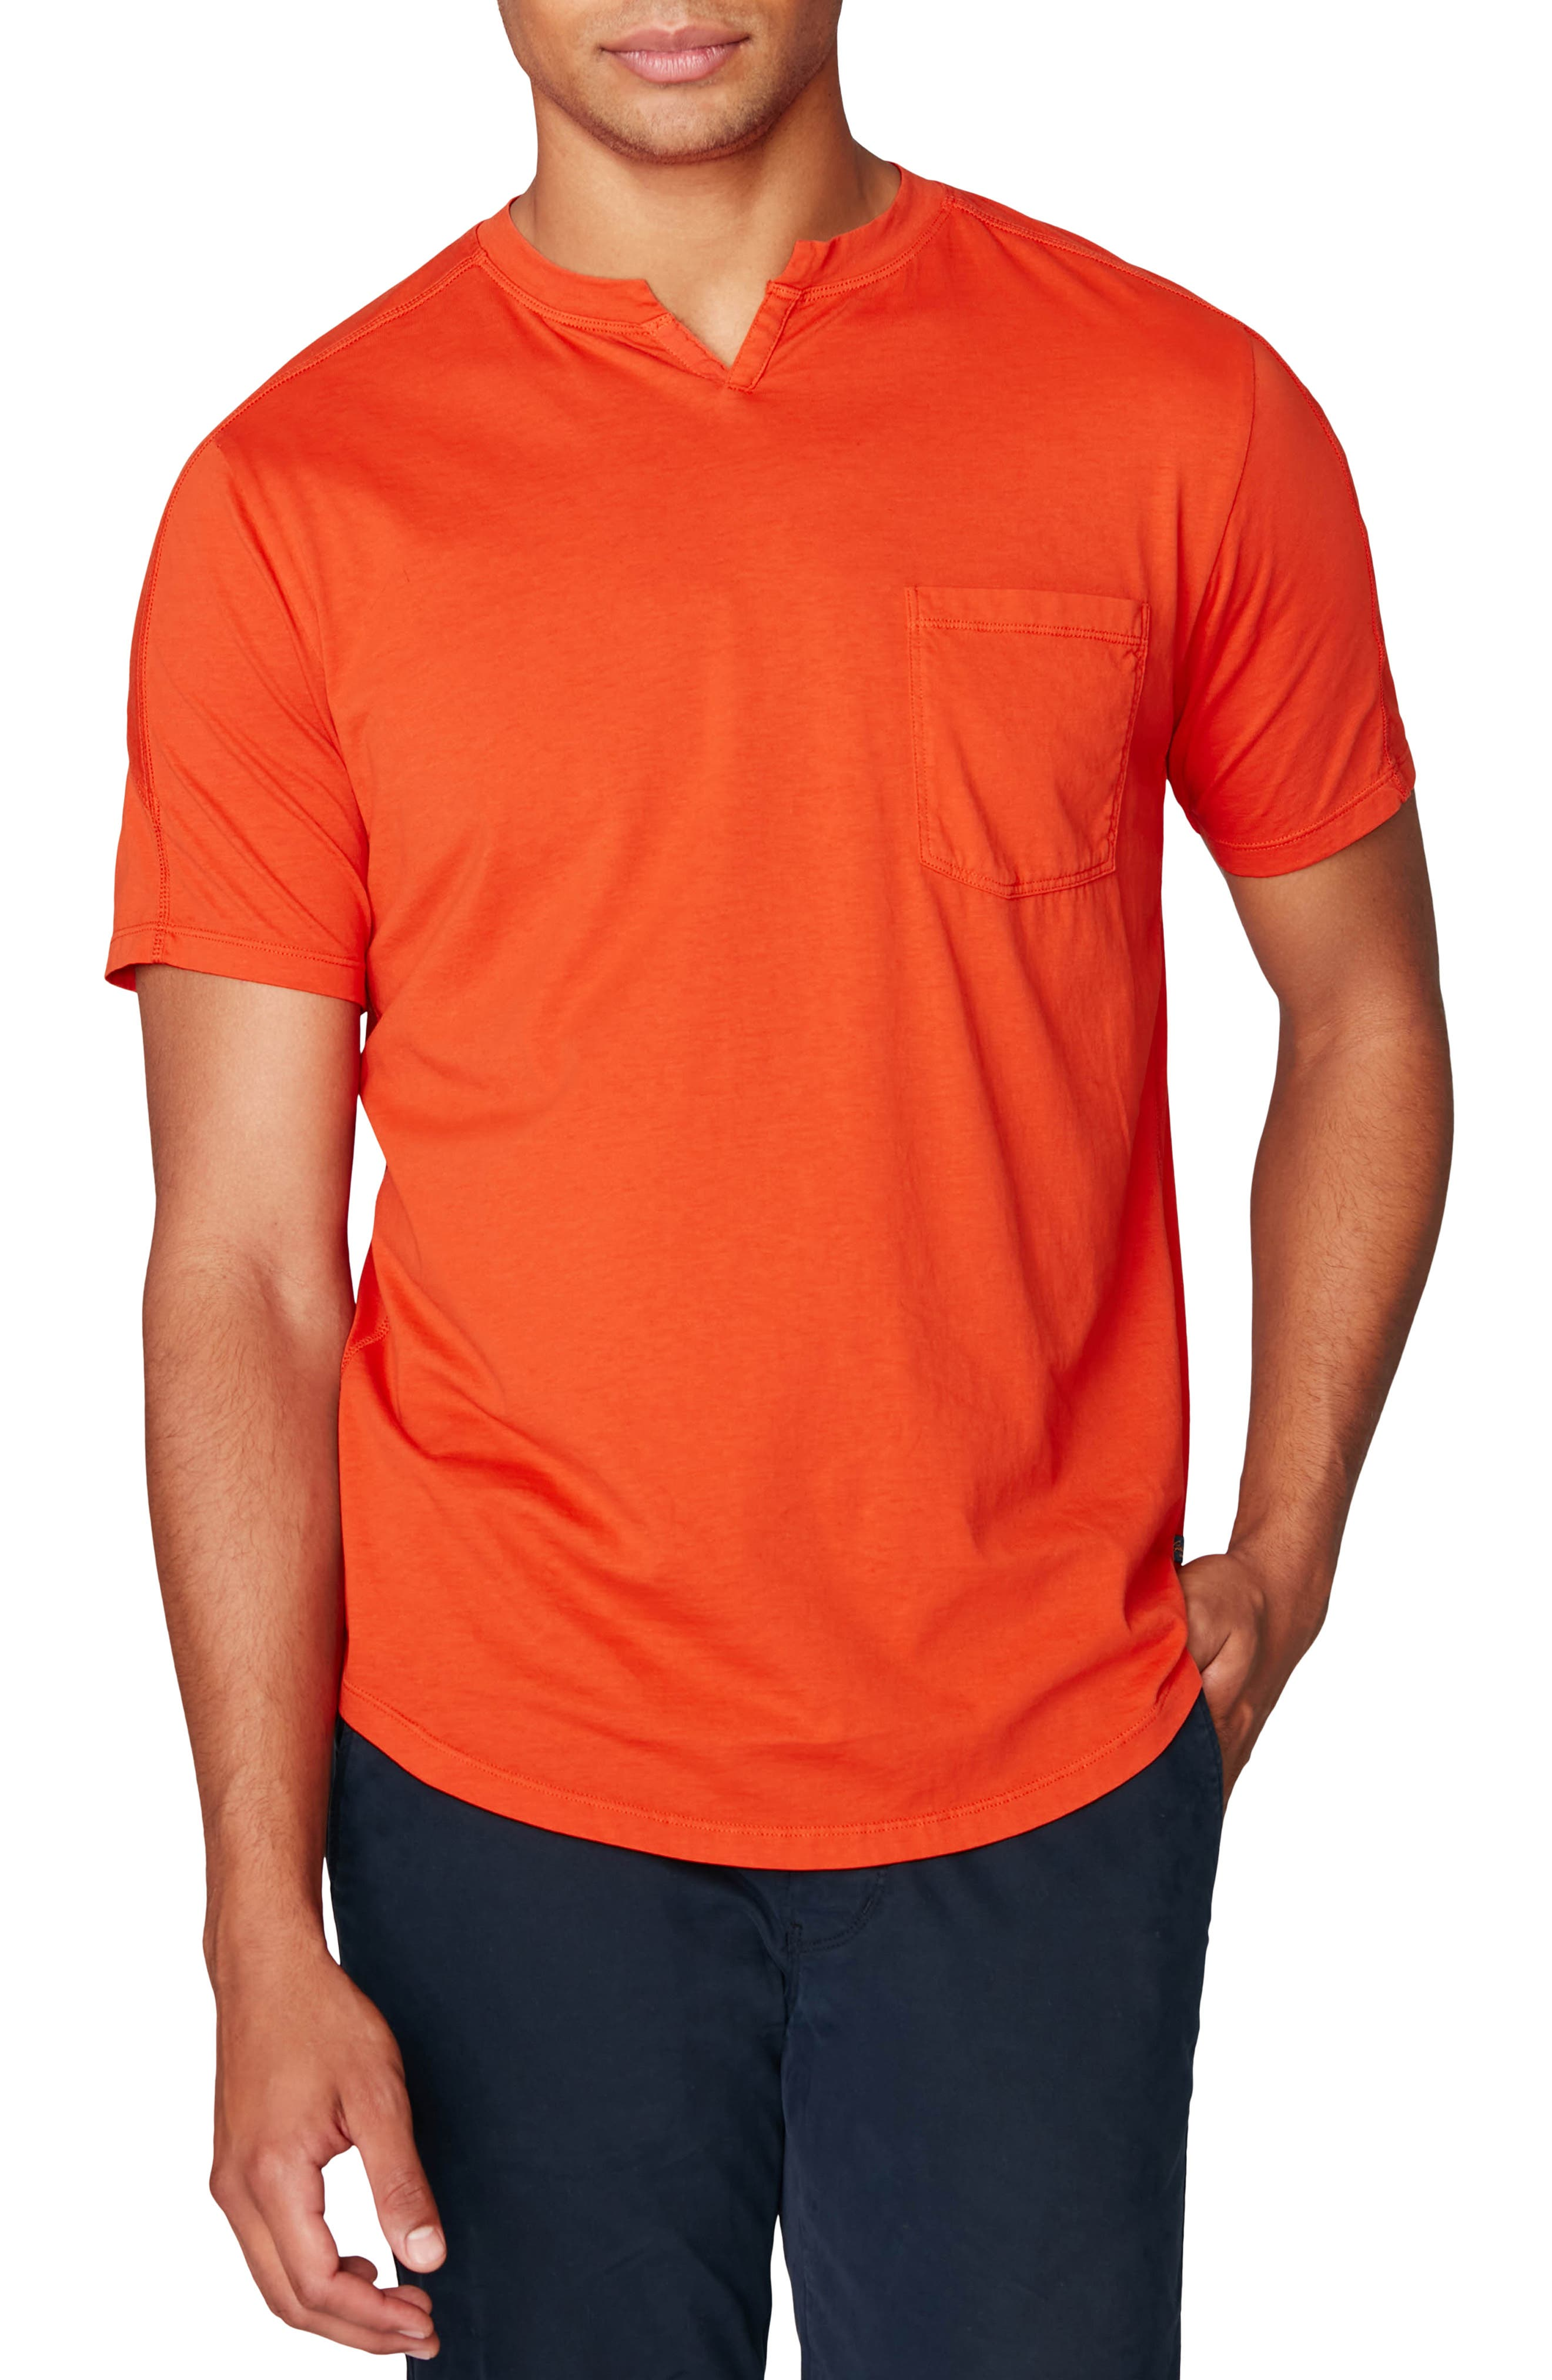 A notched collar updates a wardrobe-staple T-shirt cut from supersoft slub-cotton jersey. Style Name: Good Man Brand Premium Cotton T-Shirt. Style Number: 5534088. Available in stores.